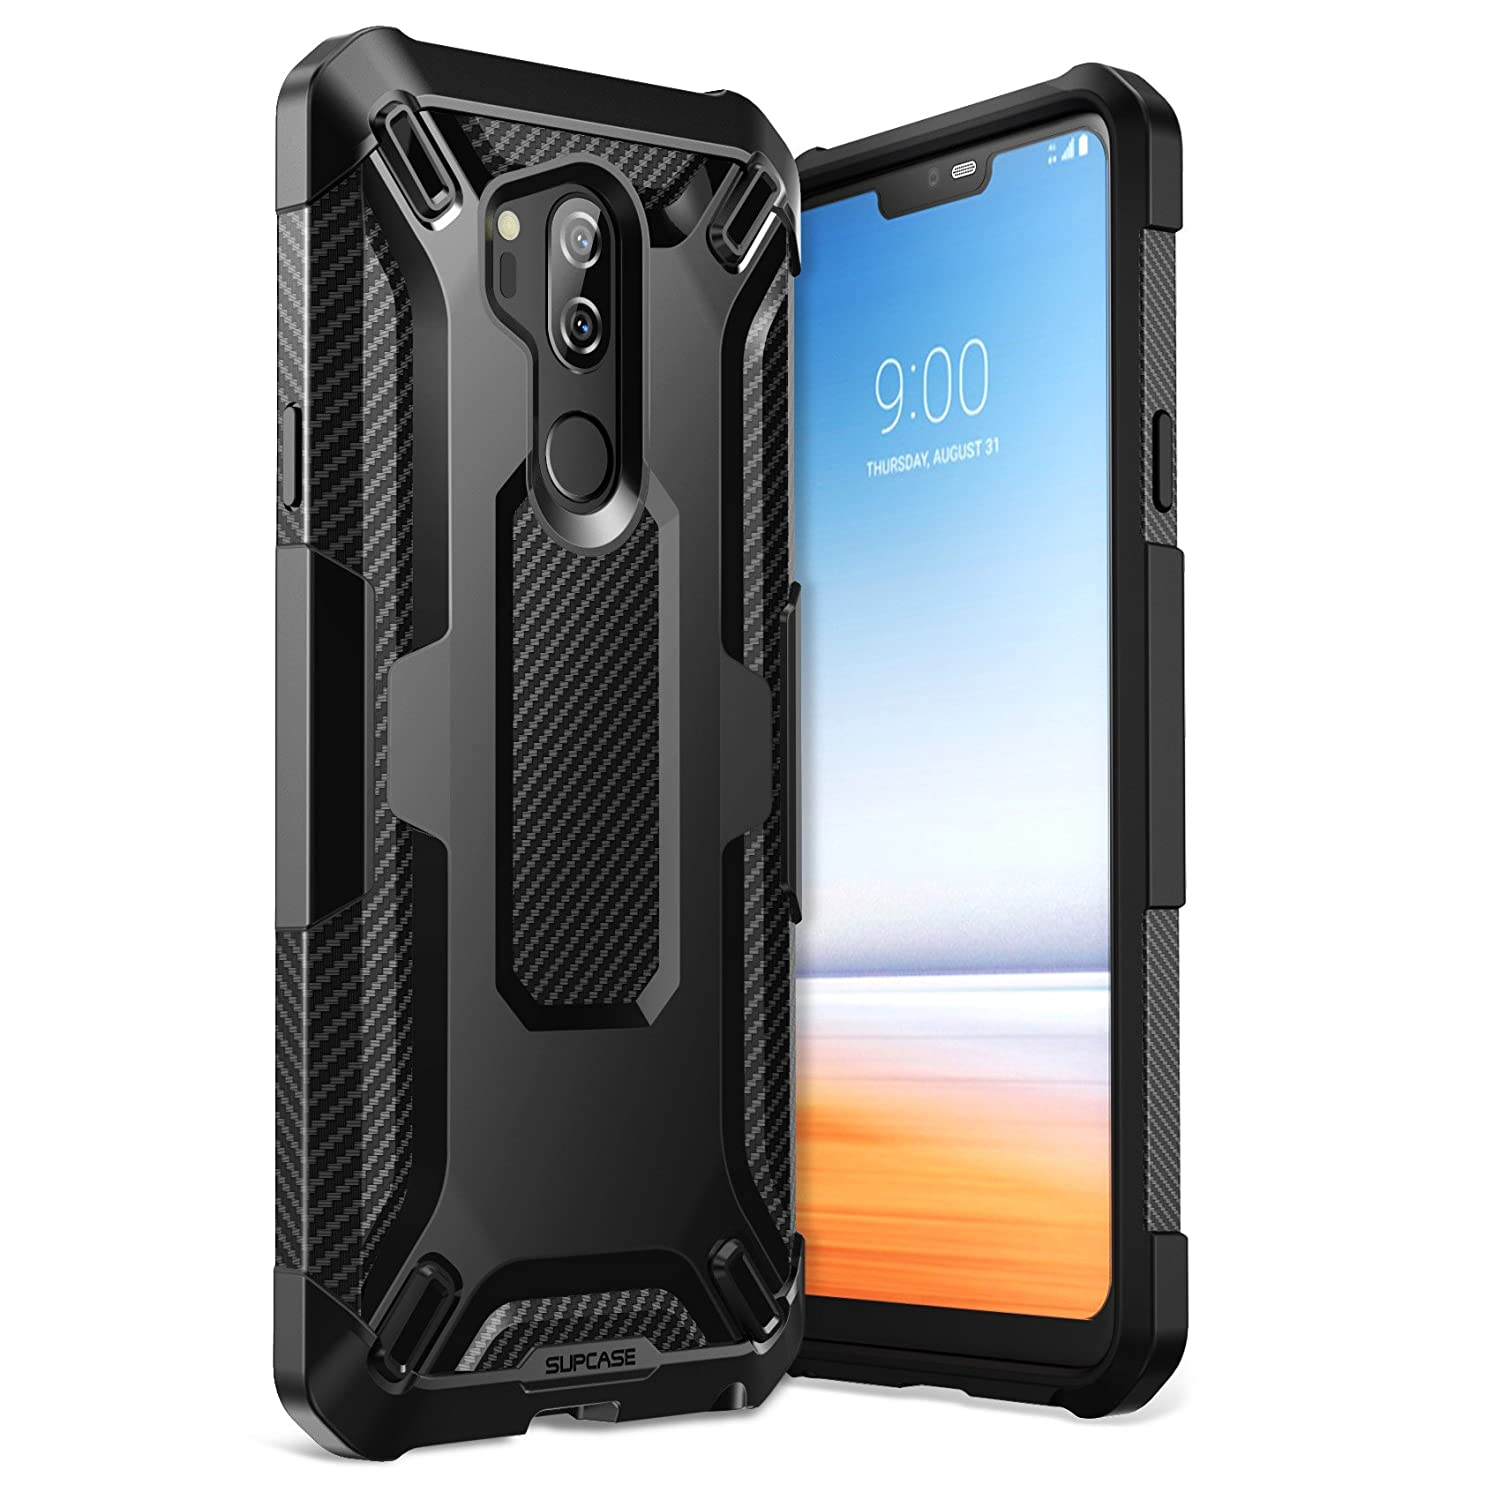 SUPCASE Unicorn Beetle Series Premium Hybrid Protective Case for Samsung Galaxy LG G7 / LG G7 ThinQ 2018 Release, Retail Package (Black)